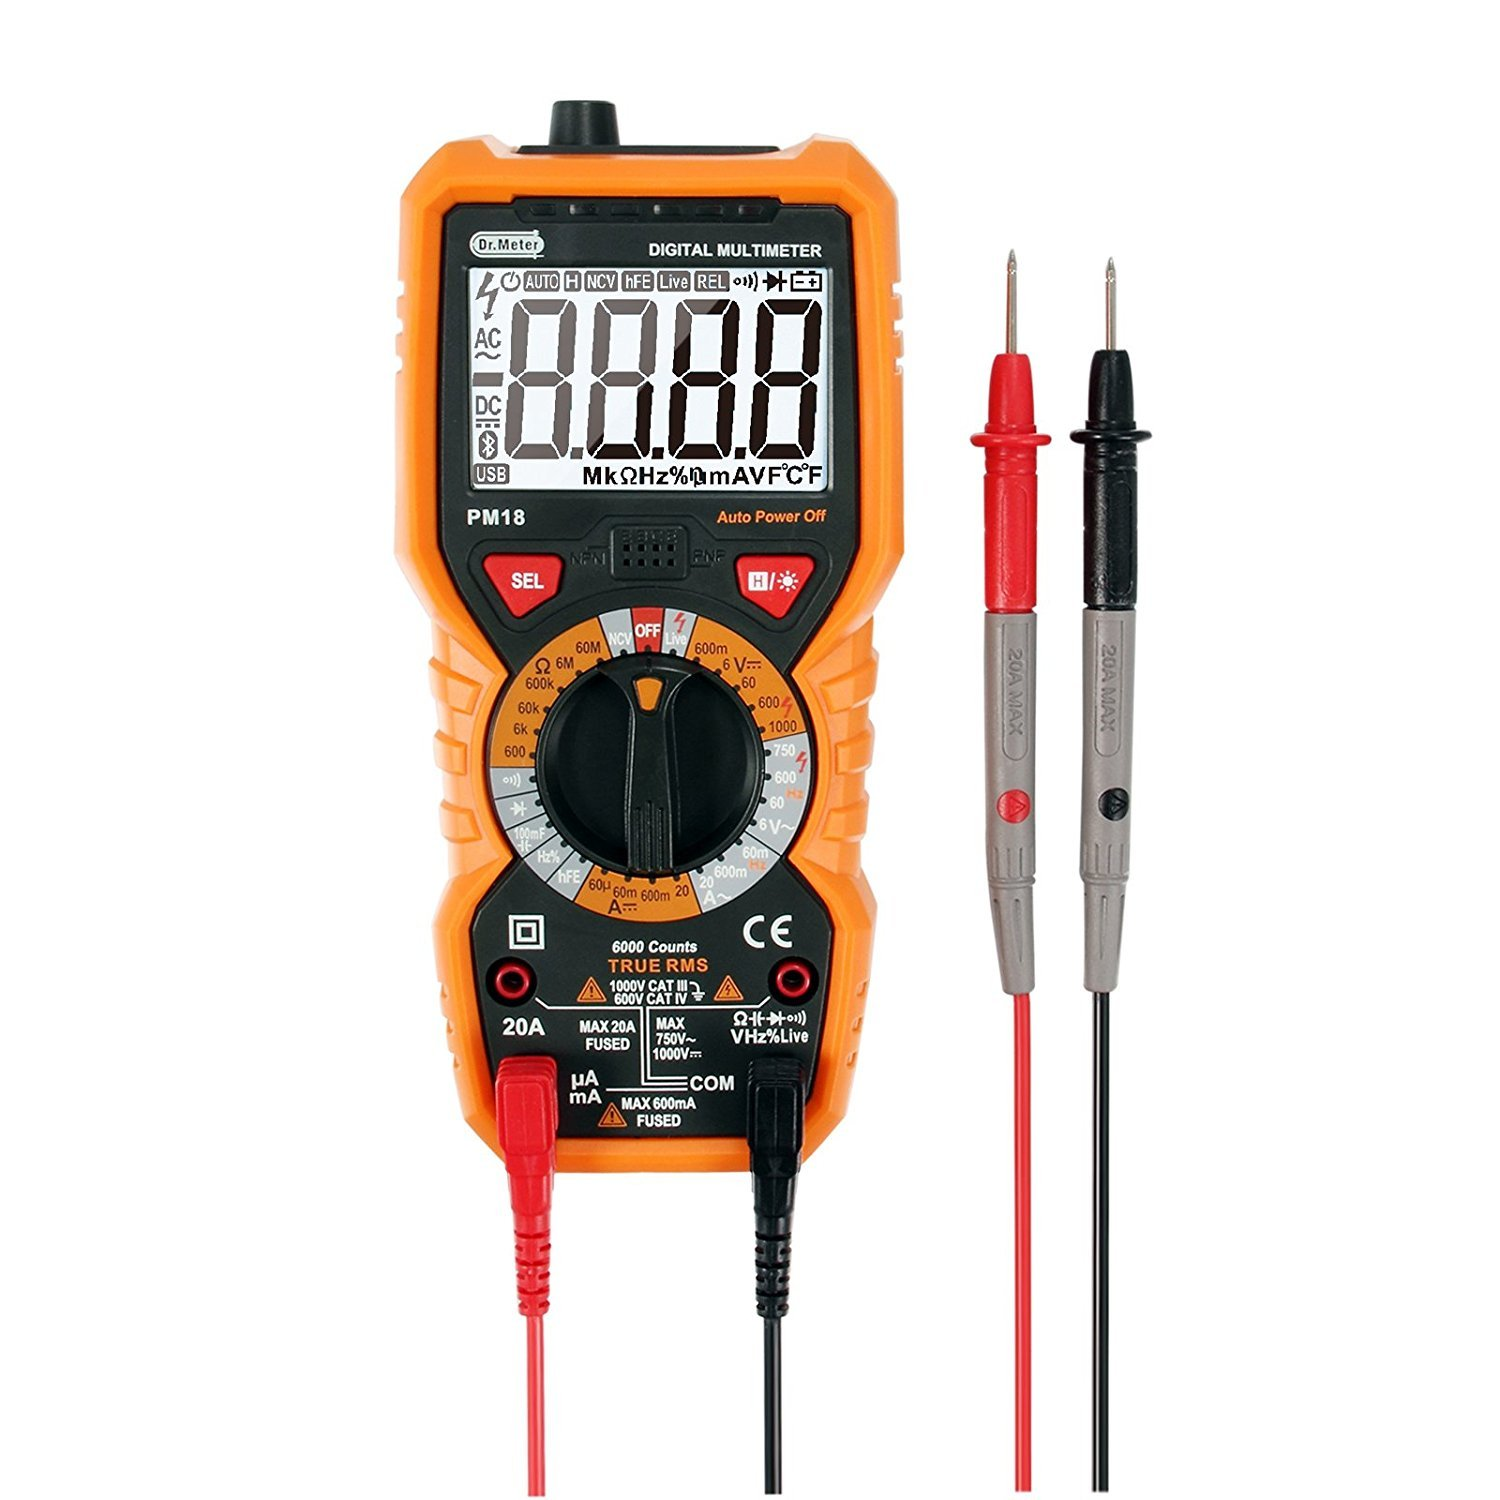 [Digital Multimeters] Dr.meter Digital Multimeter Trms 6000 Counts Tester Non-Contact Voltage Detection Multi Meter, PM18 by Dr.meter (Image #8)